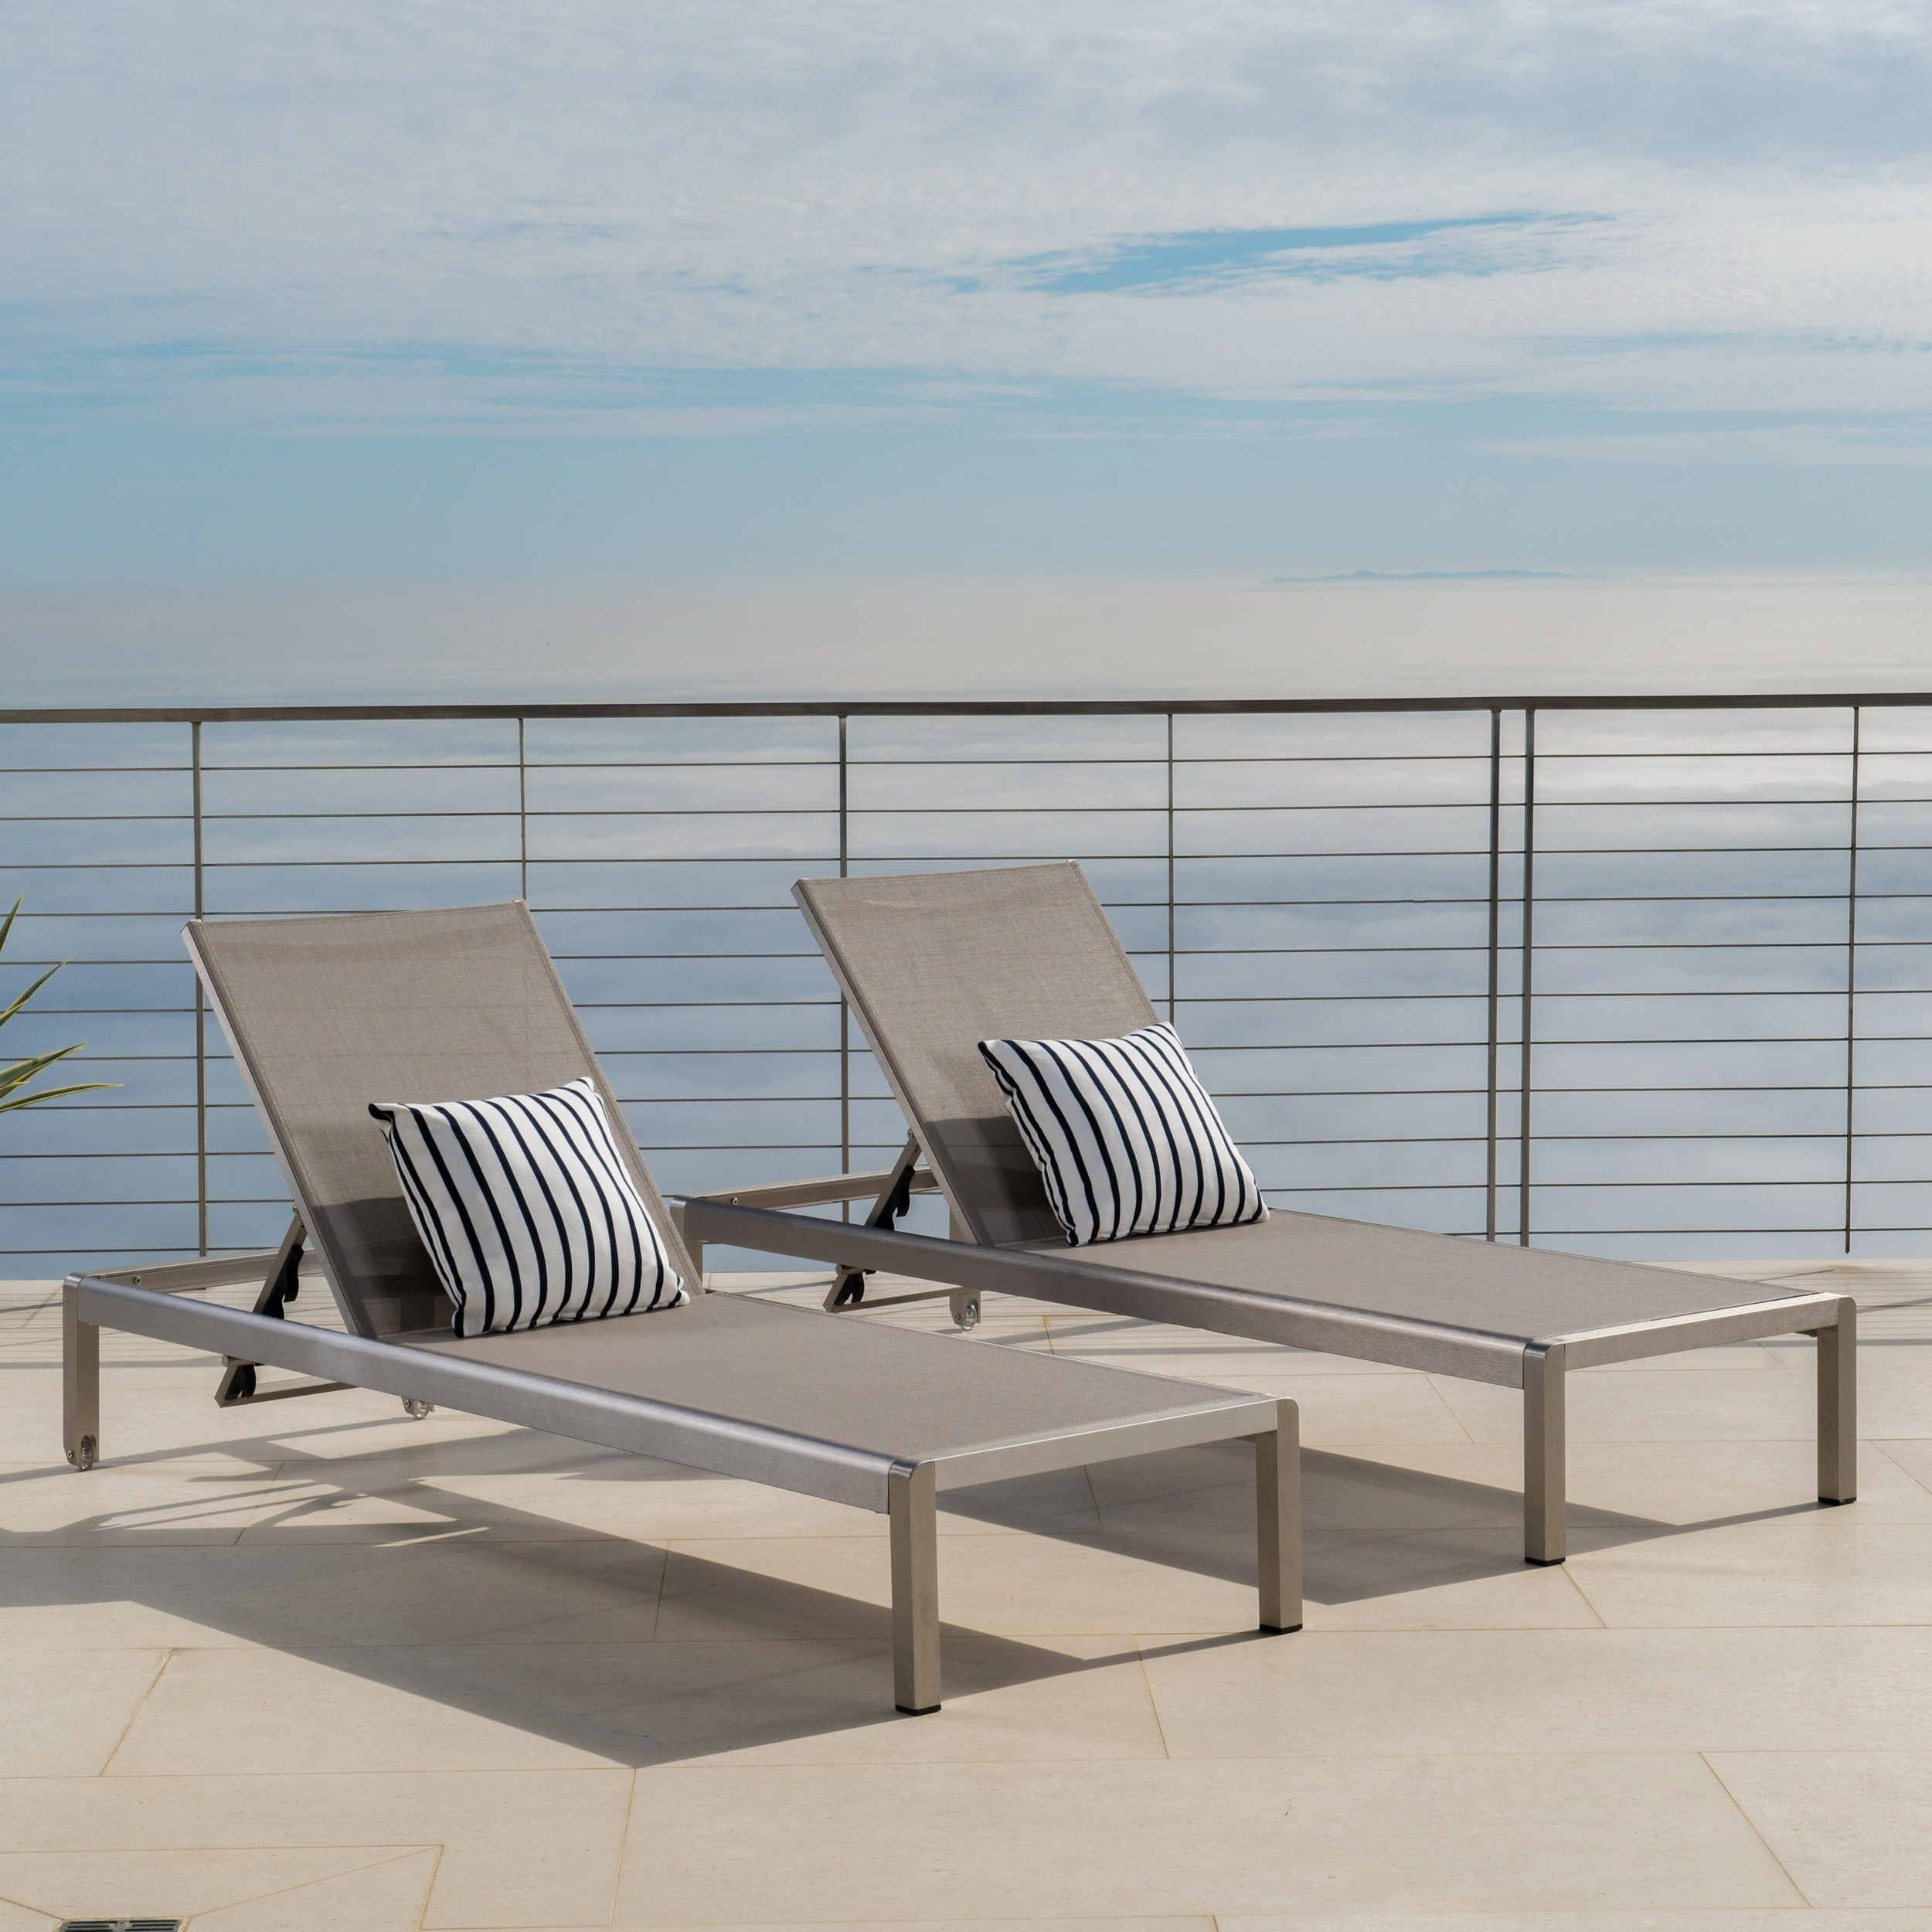 Most Current Outdoor Aluminum Chaise Lounges With Regard To Cape Coral Outdoor Aluminum Adjustable Chaise Lounge (Set Of 2) Christopher Knight Home (View 11 of 25)